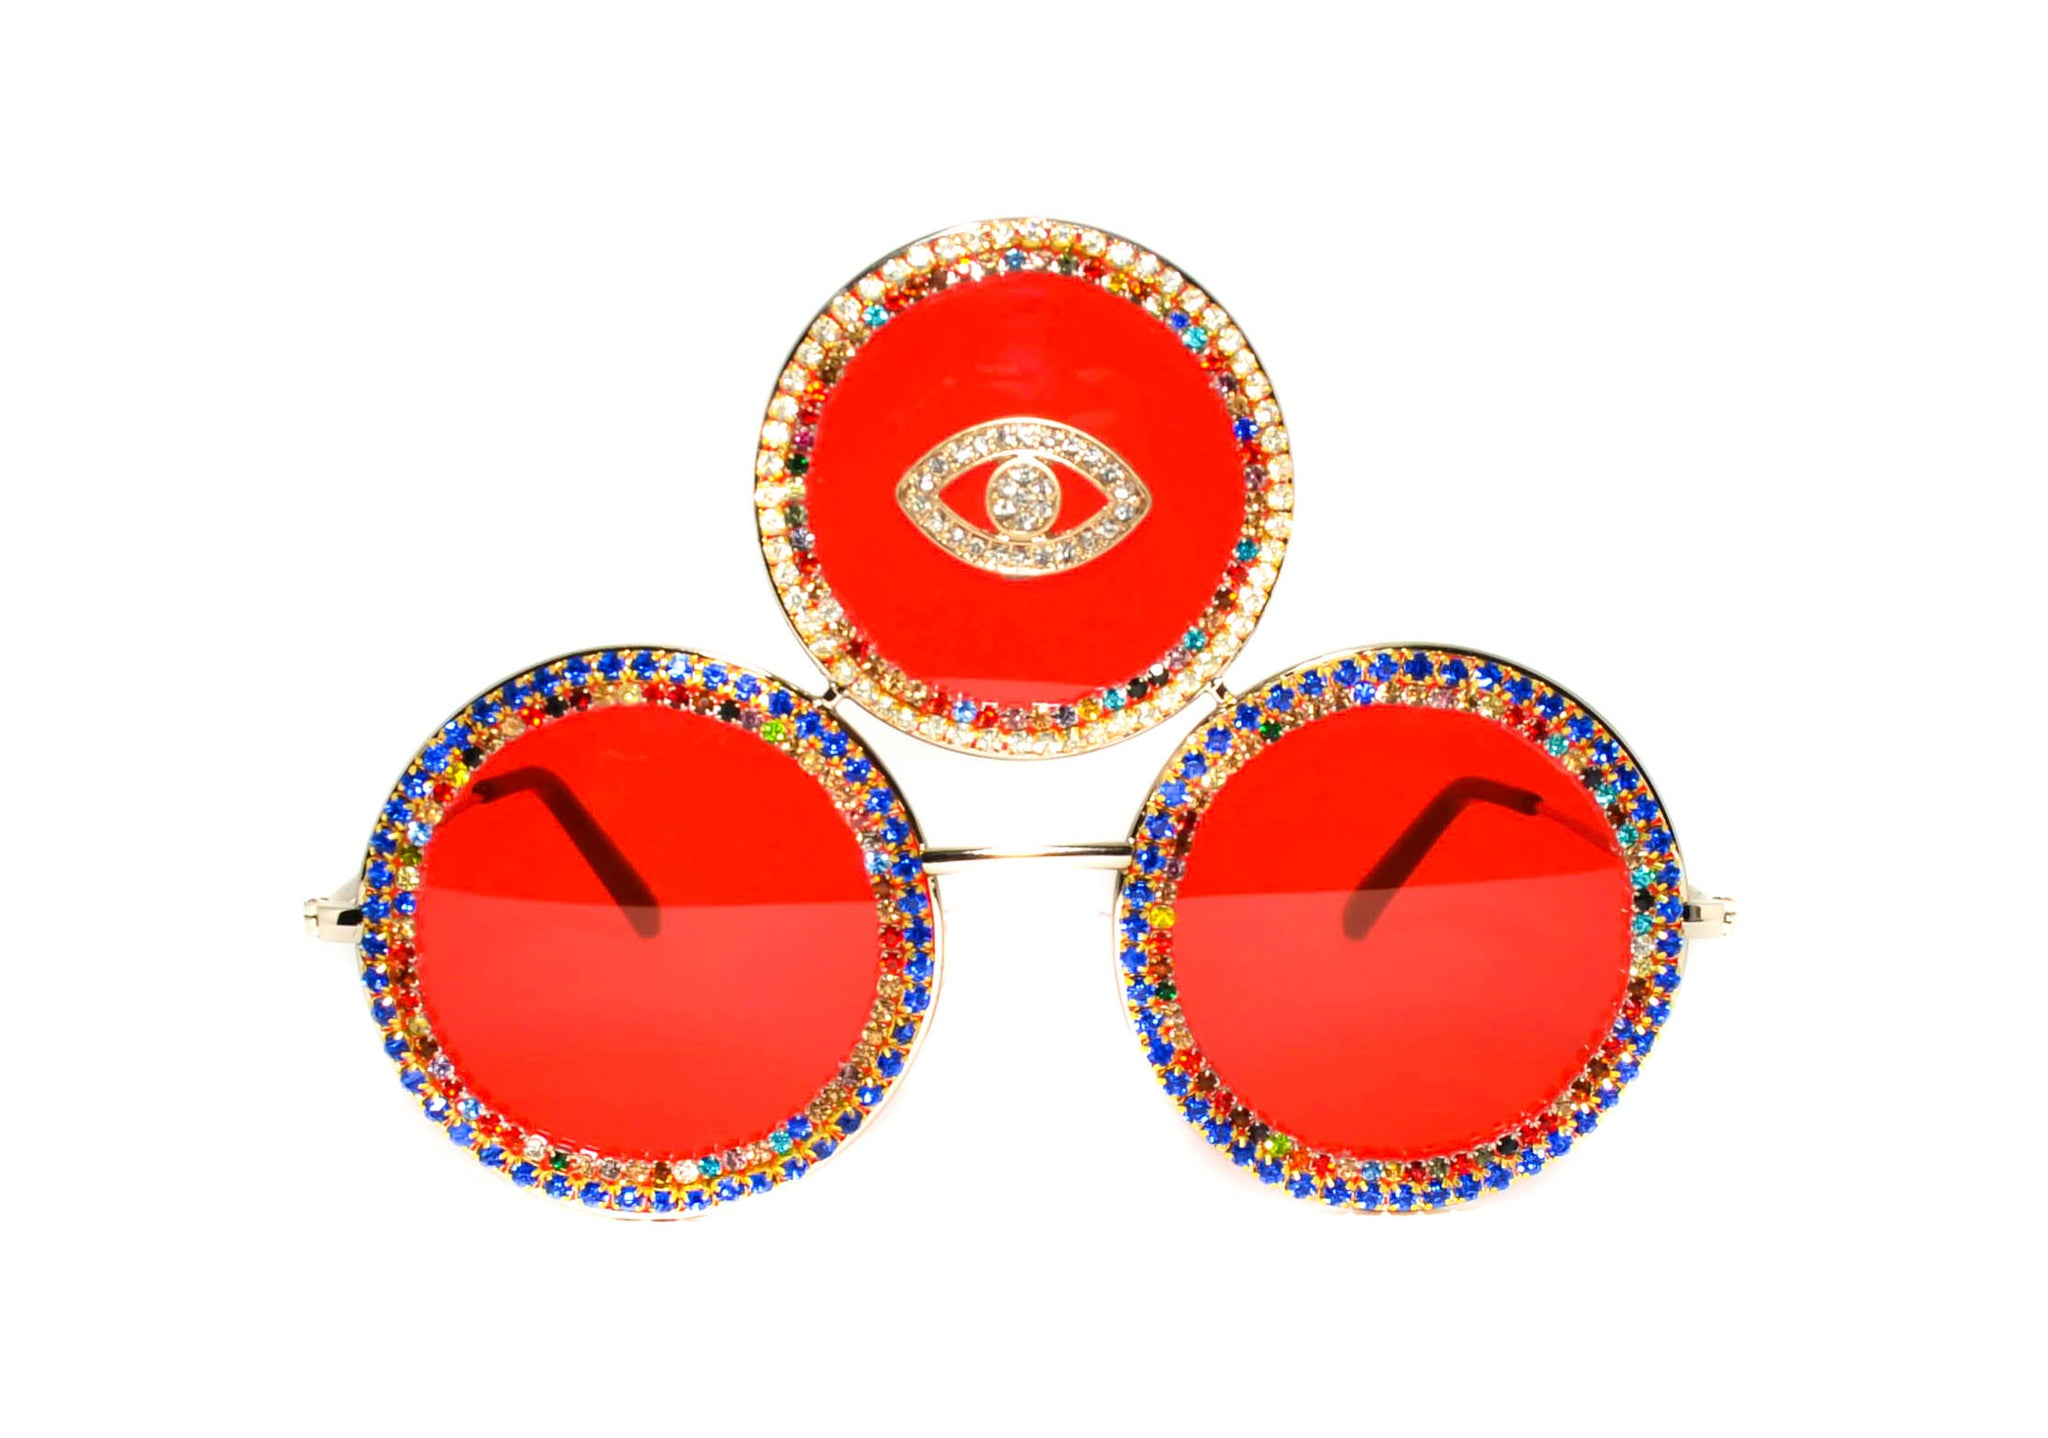 Third Eye Shades in Red - Vintage Shop - Hunt and Gather San Diego - Festival Fashion